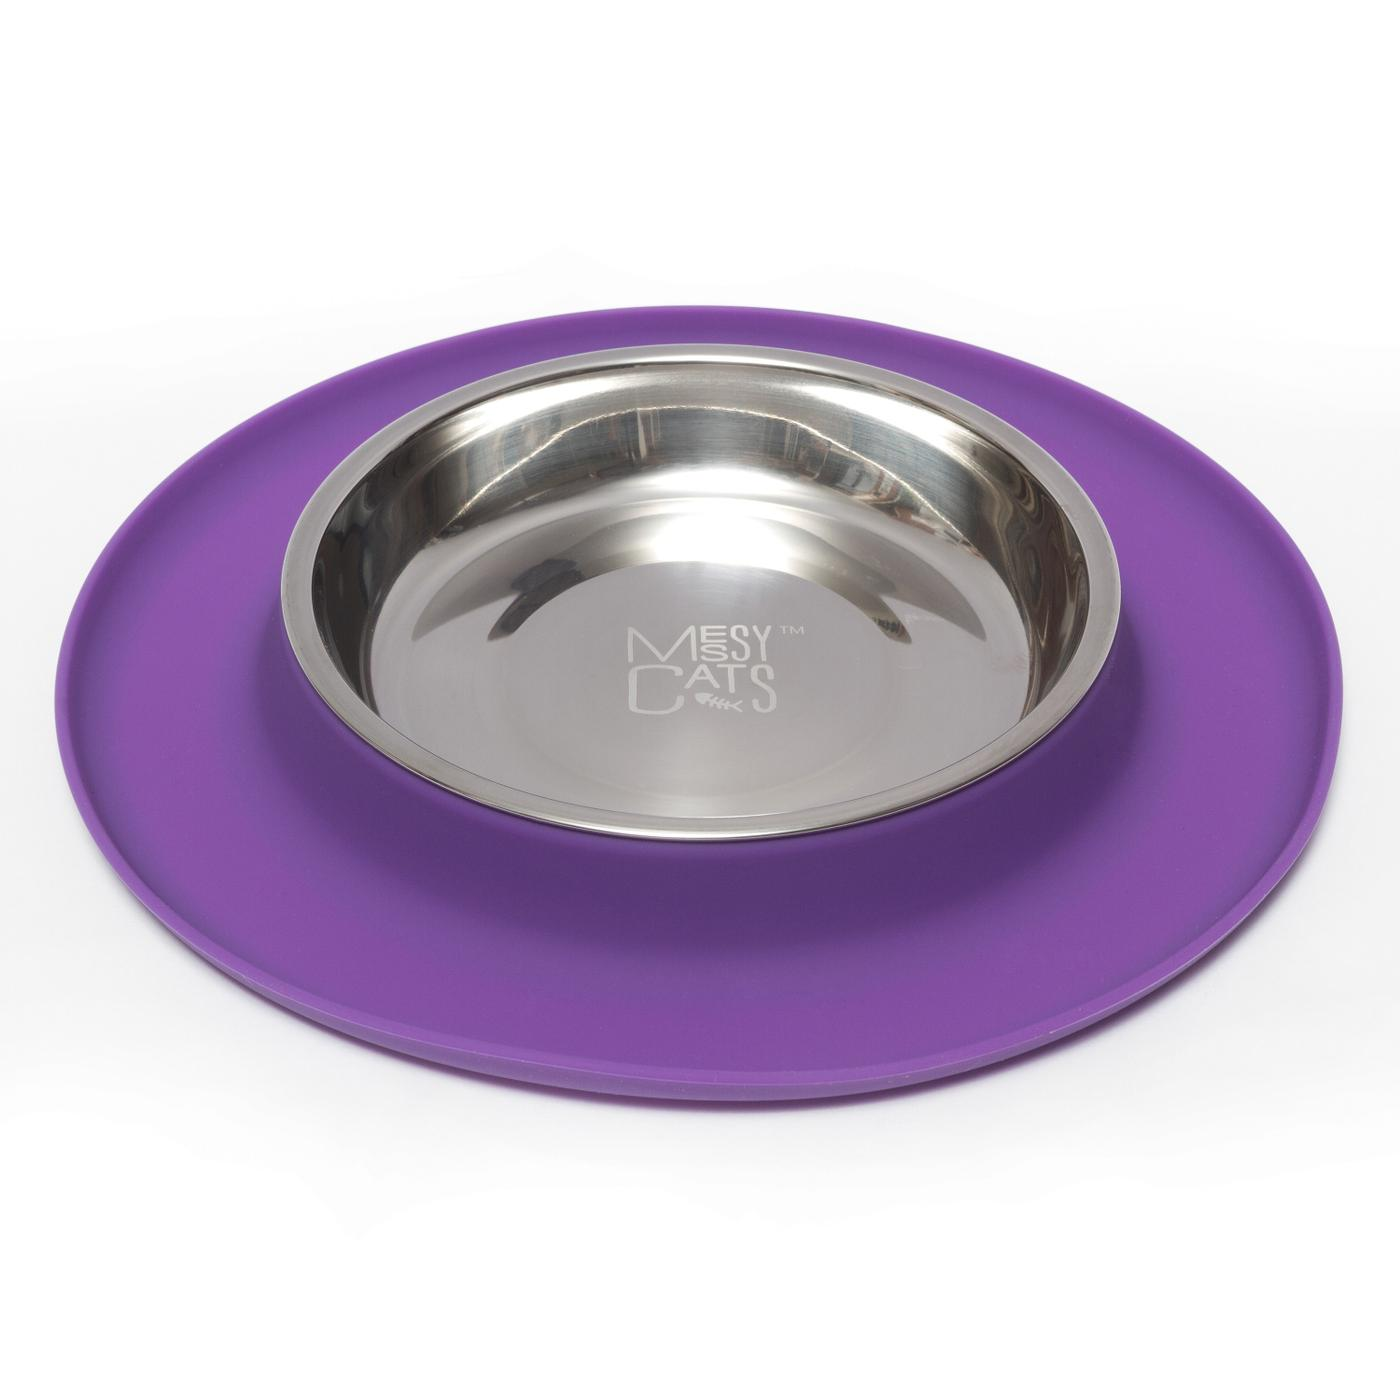 Messy Cats Silicone Feeder, Medium, Purple